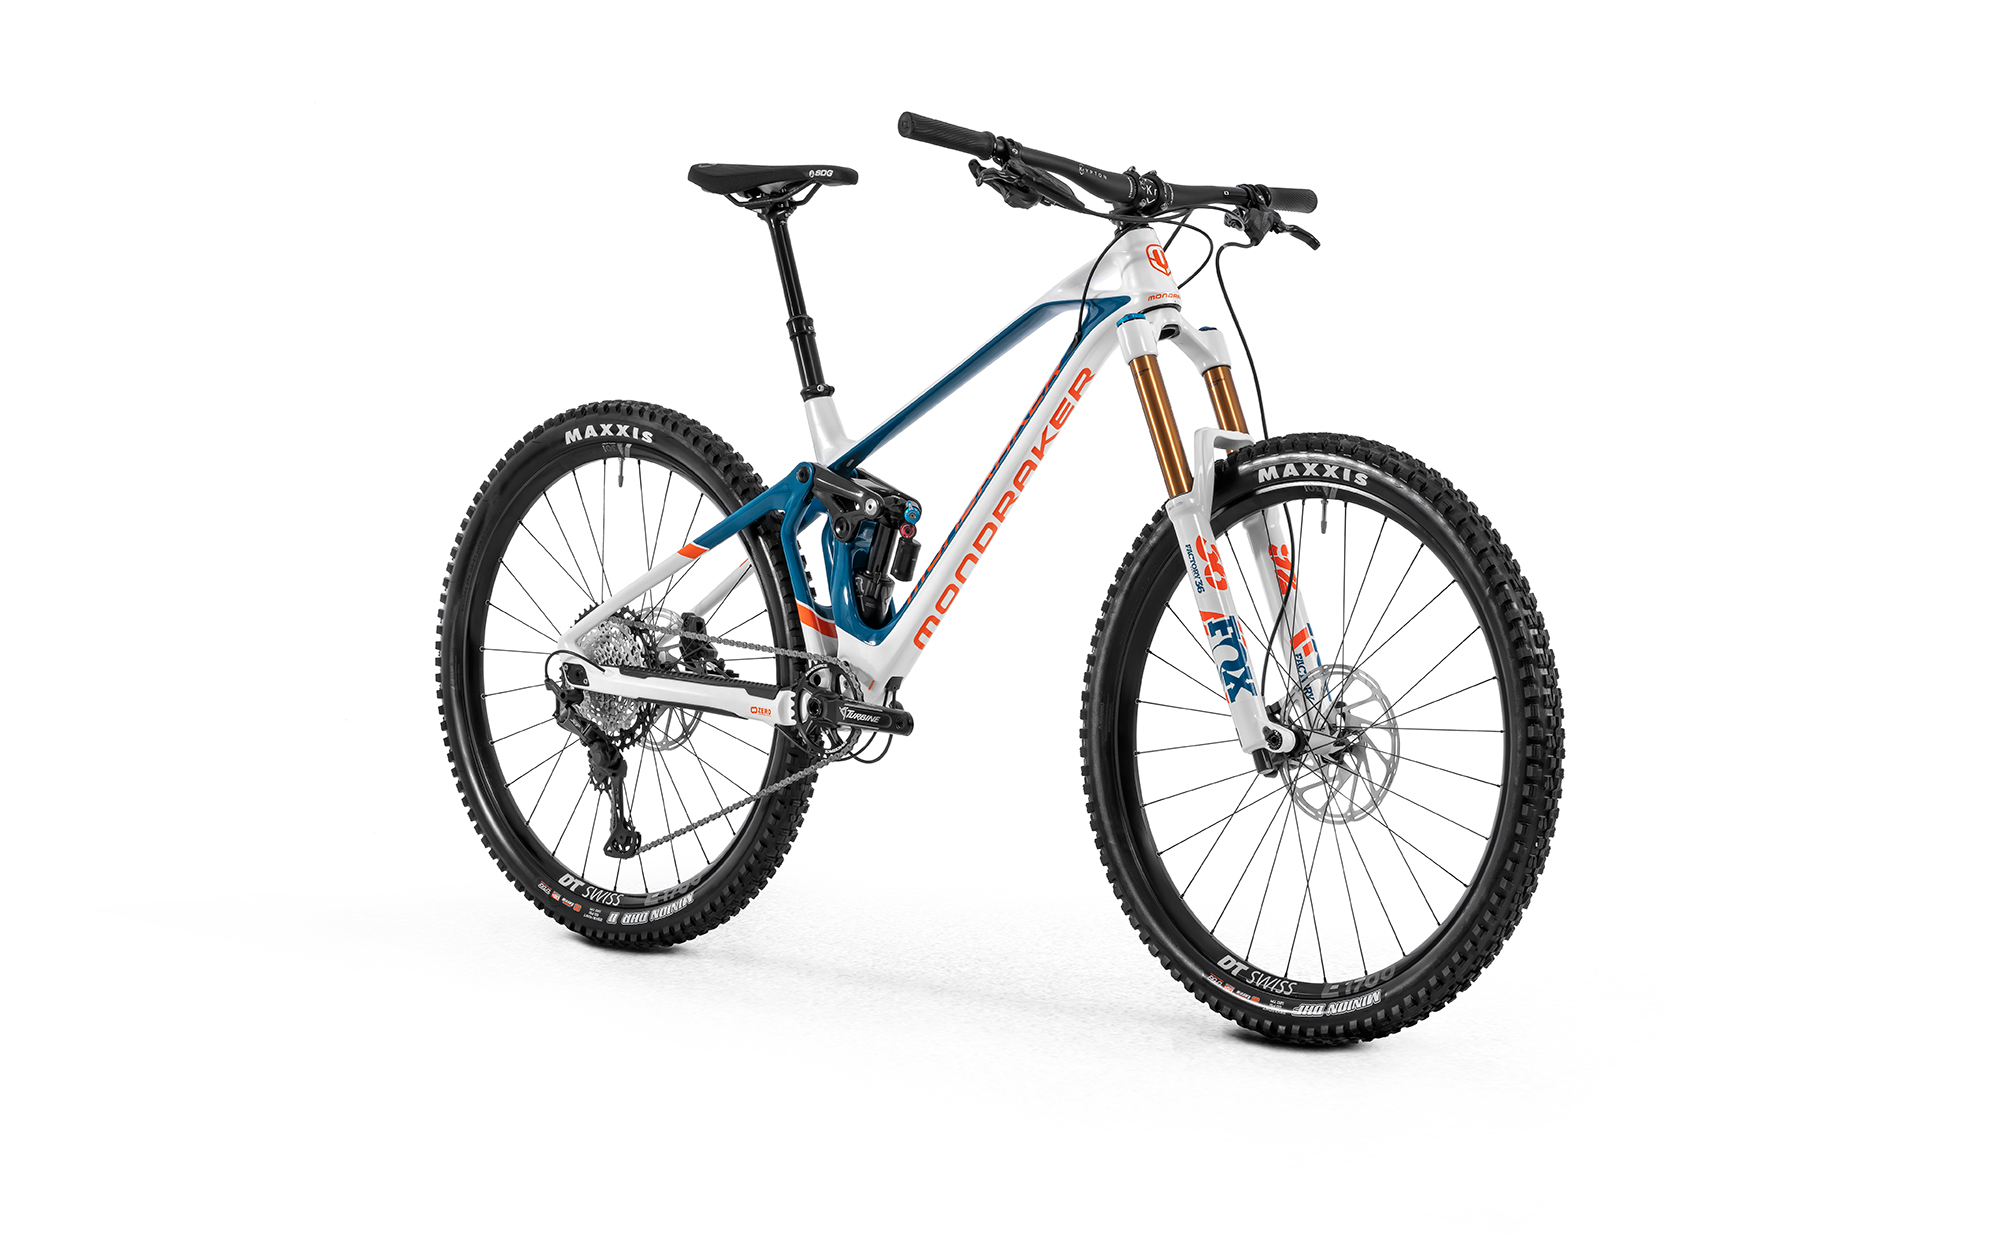 Super Foxy Carbon R, white/petrol/fox orange, 2020